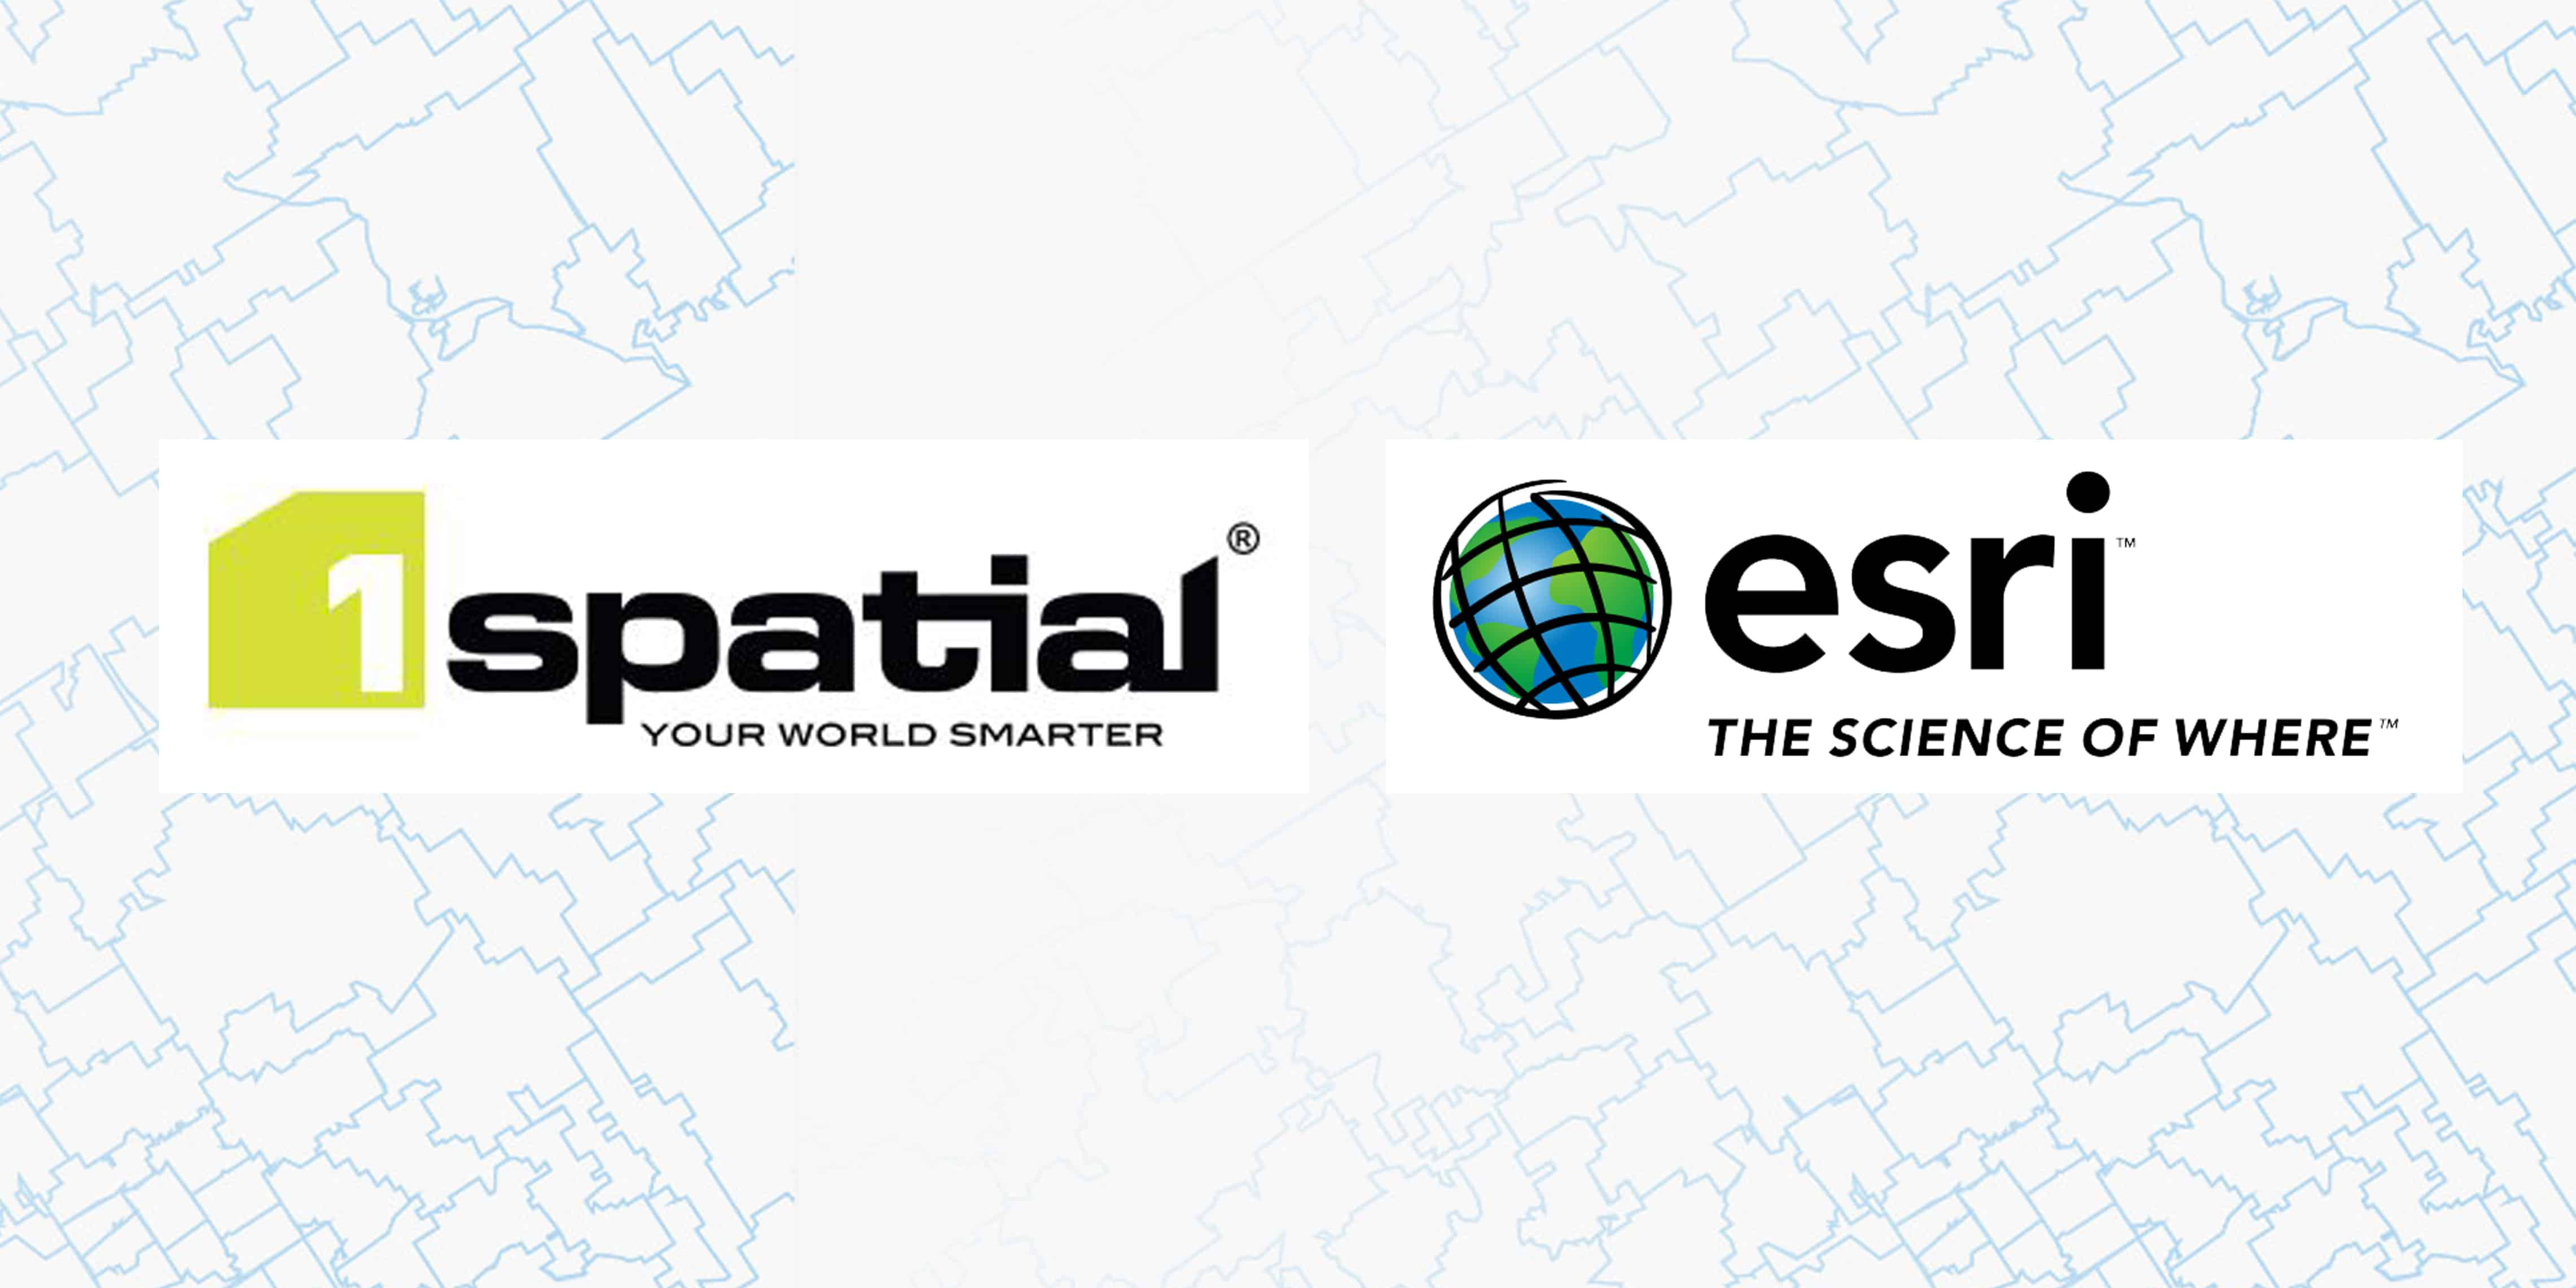 1spatial and Esri